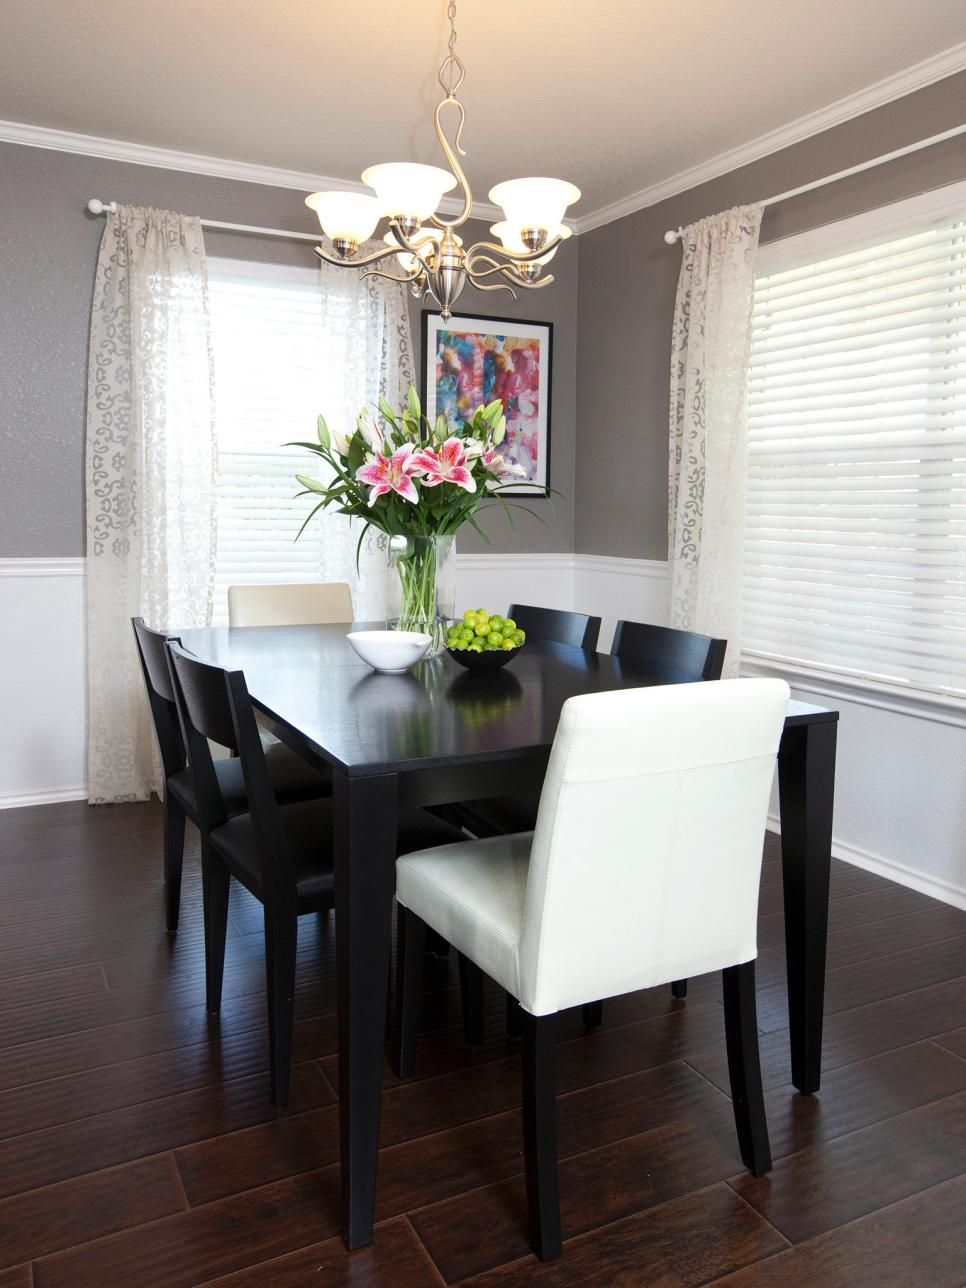 Rooms Viewer Dining Room Small Small Dining Room Decor Neutral Dining Room